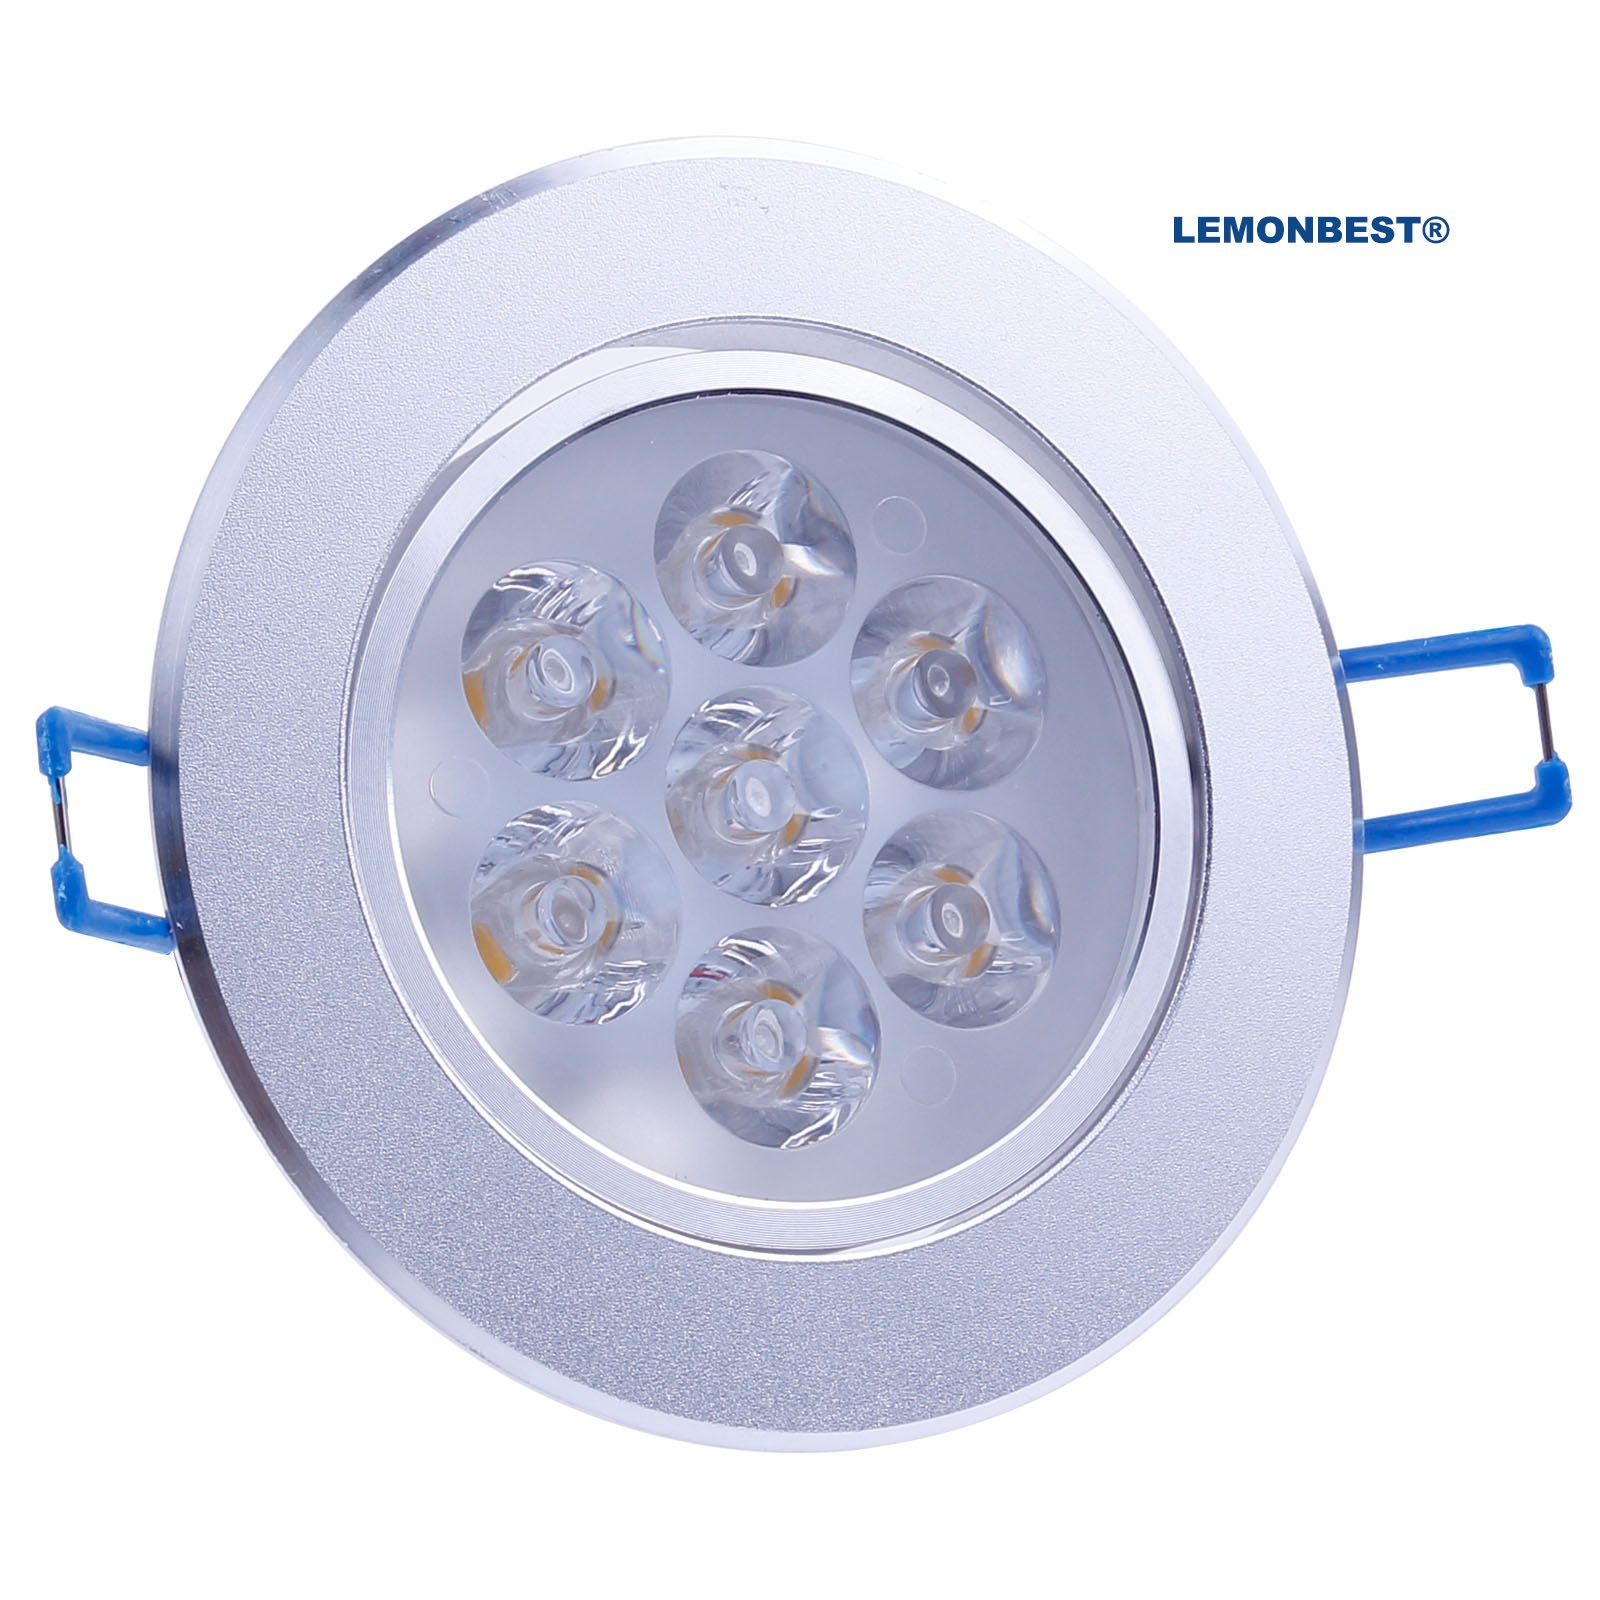 LemonBest Brand New 110V Dimmable 7W LED Ceiling Light Downlight Recessed Lighting, Superbright Cool White by LemonBest (Image #1)